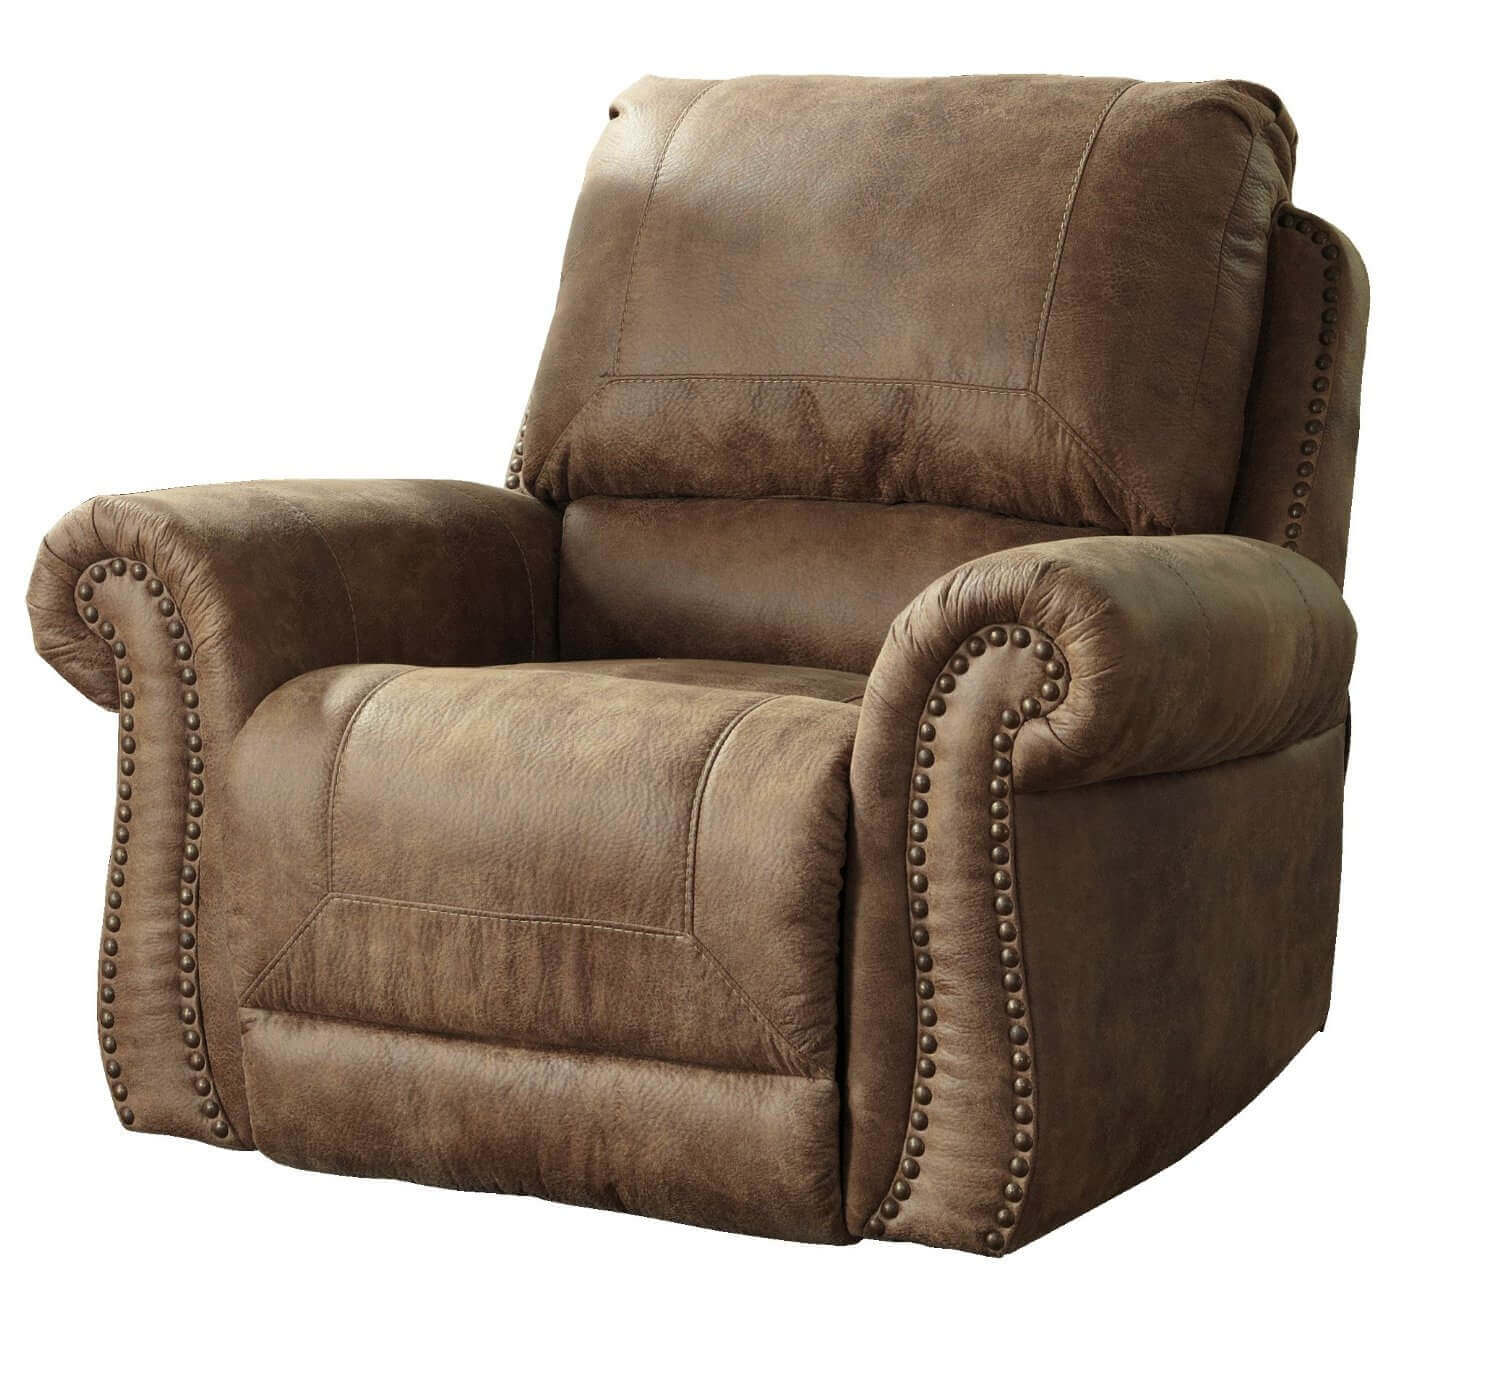 reading office brown camping extremely contemporary that the reclining recliners chairs most recliner types in of look jitco comfortable nadia cozy leather world furniture dark microfiber reviews worlds jrwu comforter chair